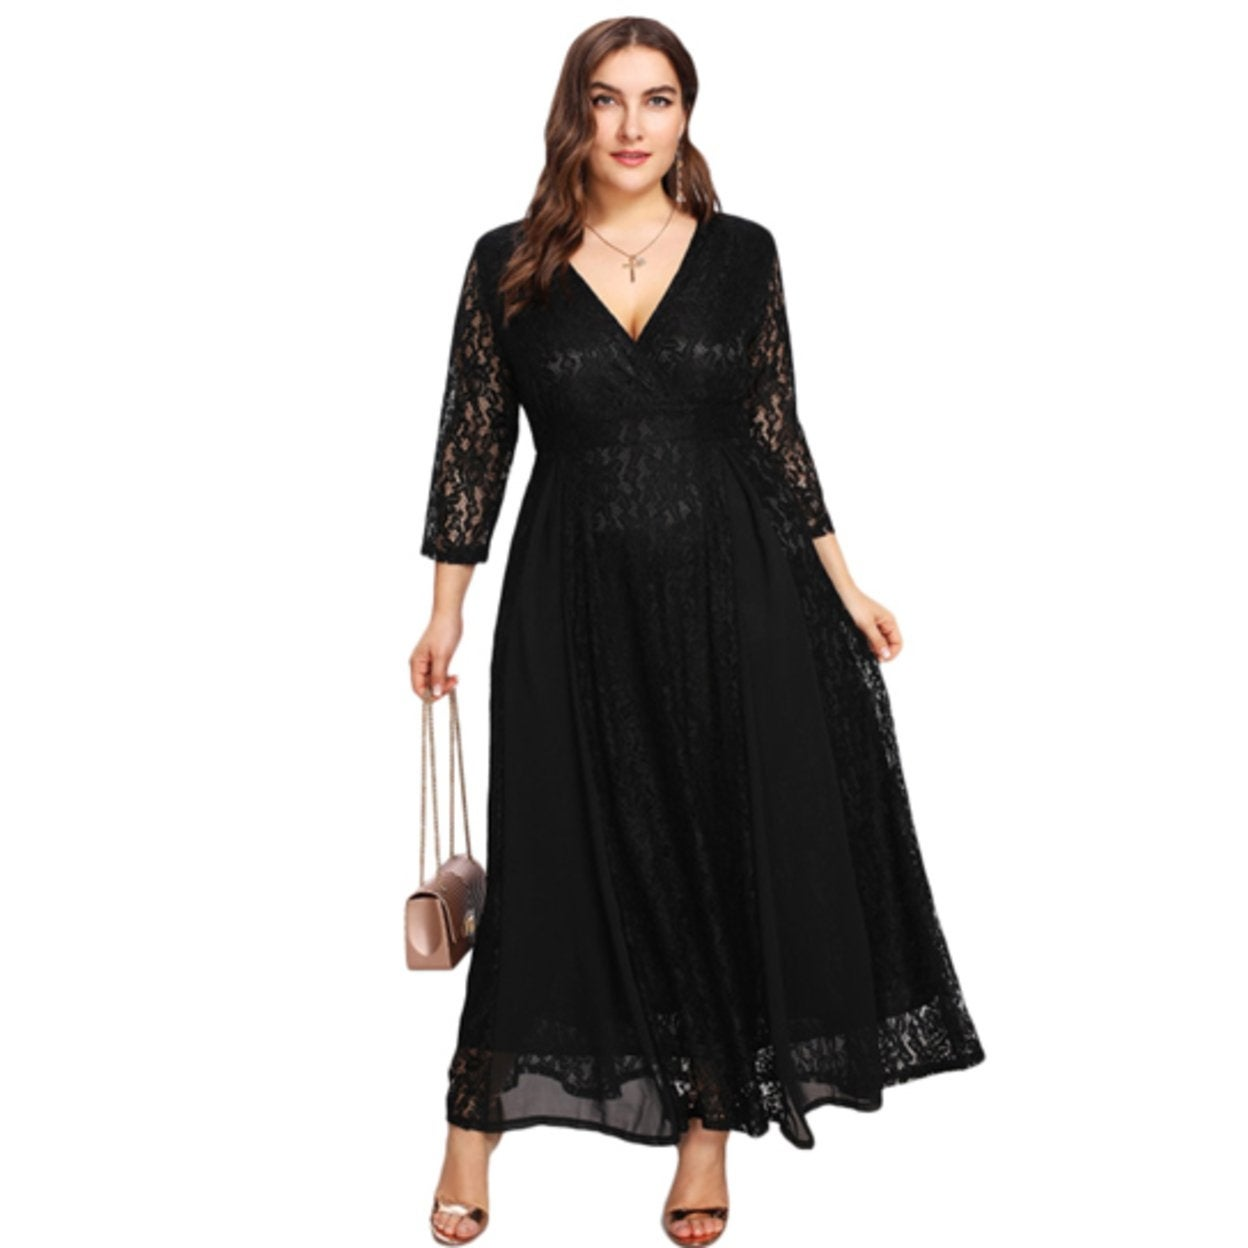 b5a6de6ced4 Shop Women s Plus Size High Waist Lace Overlay Evening Maxi Dress - On Sale  - Free Shipping Today - Overstock - 27114107